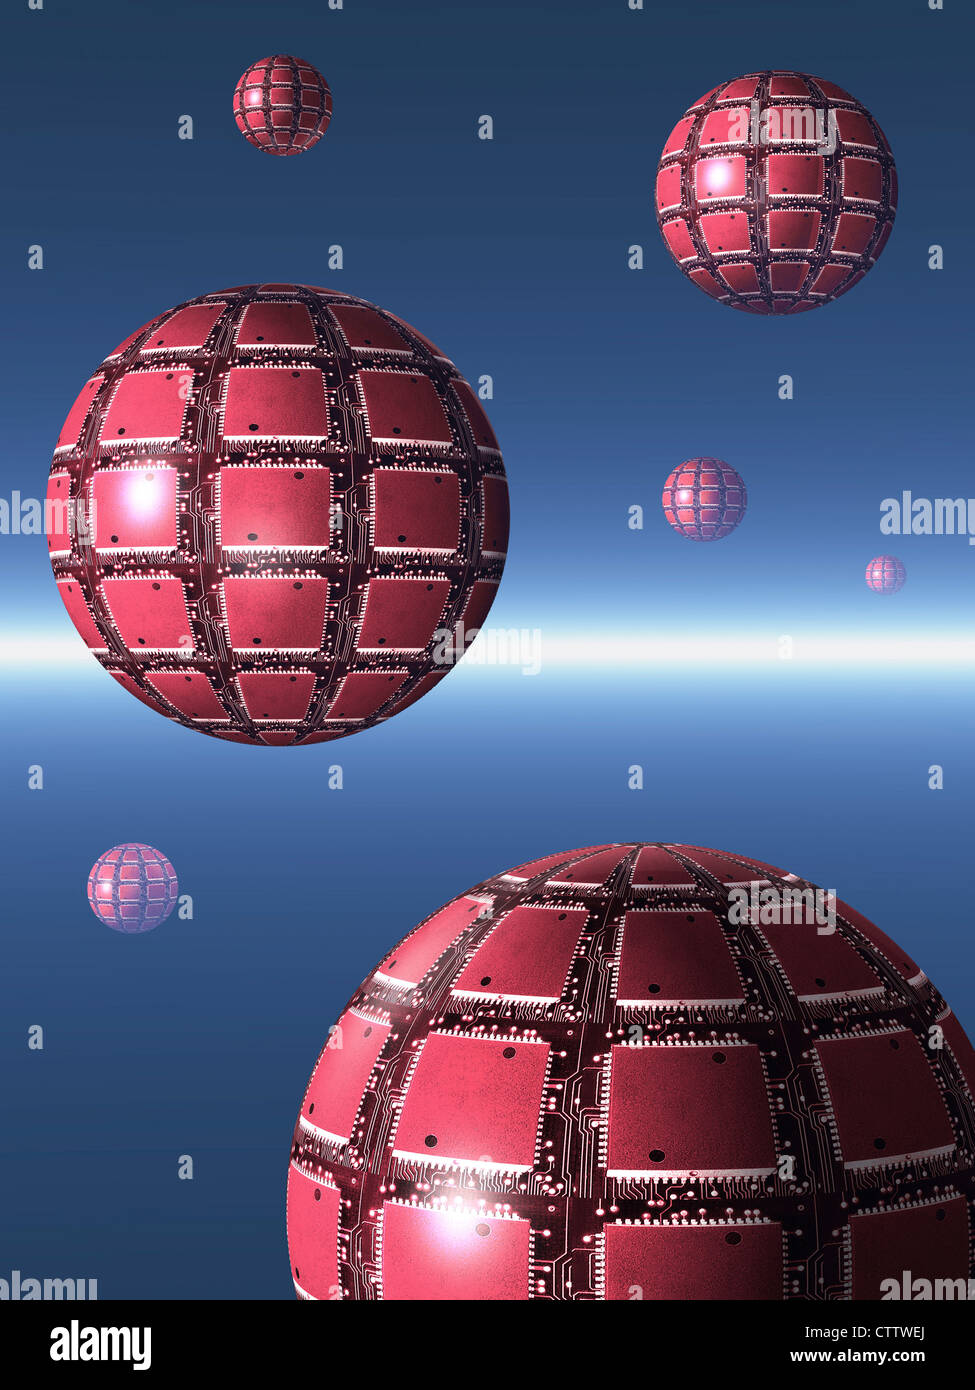 Spheres with computer chips on their surface floating in a blue space - Schwebende rote Kugeln aus Computerchips - Stock Image